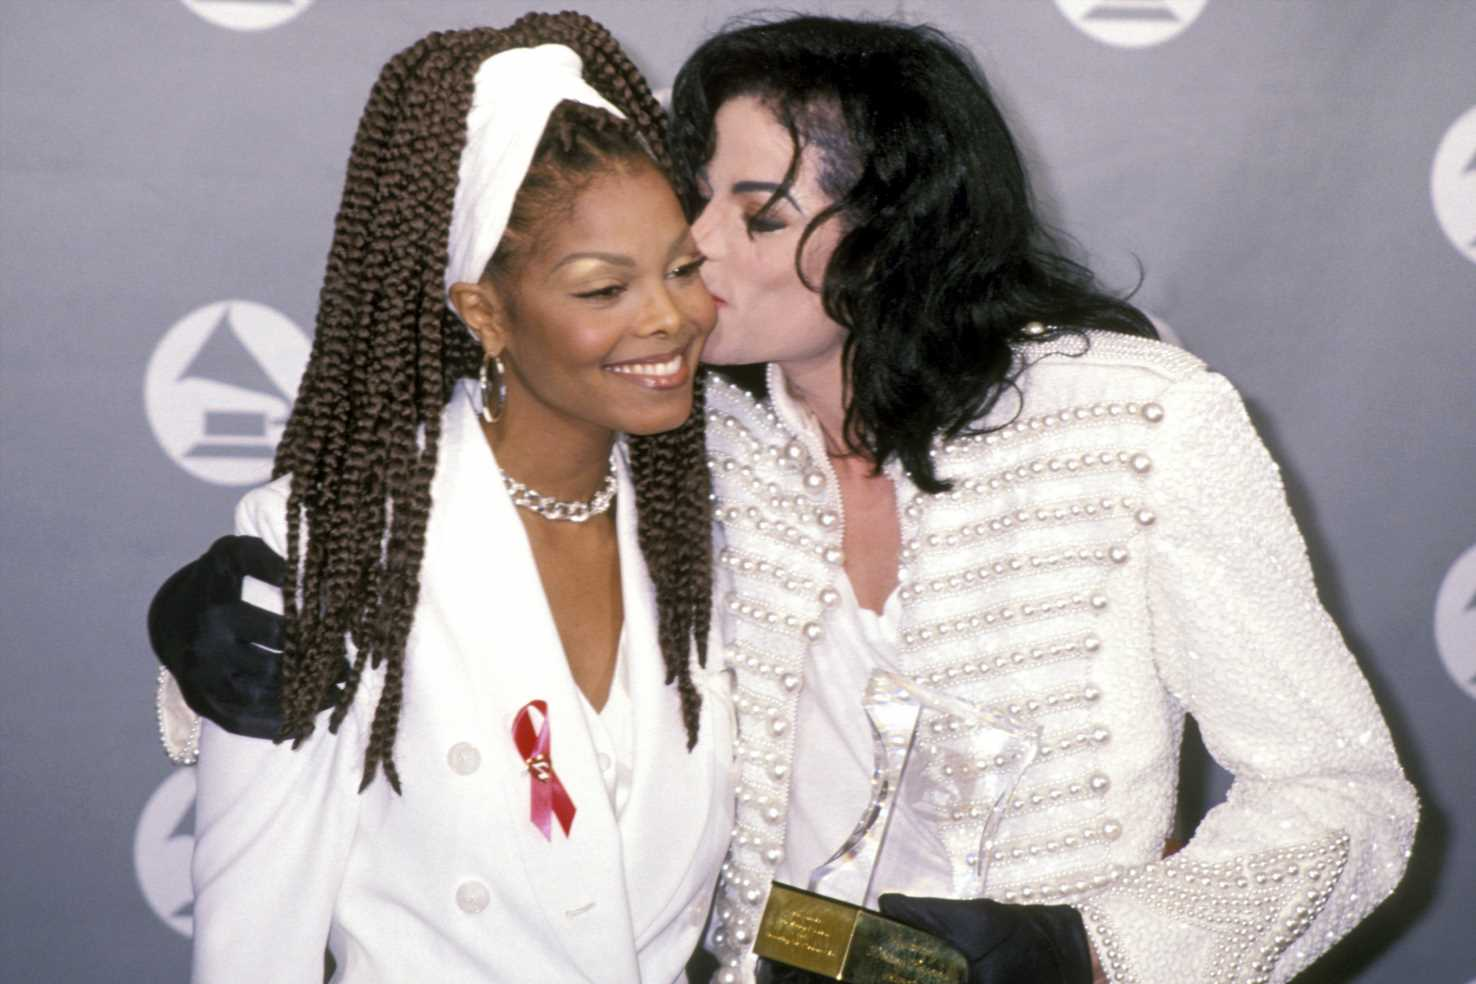 Janet Jackson says Michael Jackson's legacy will live on despite abuse claims